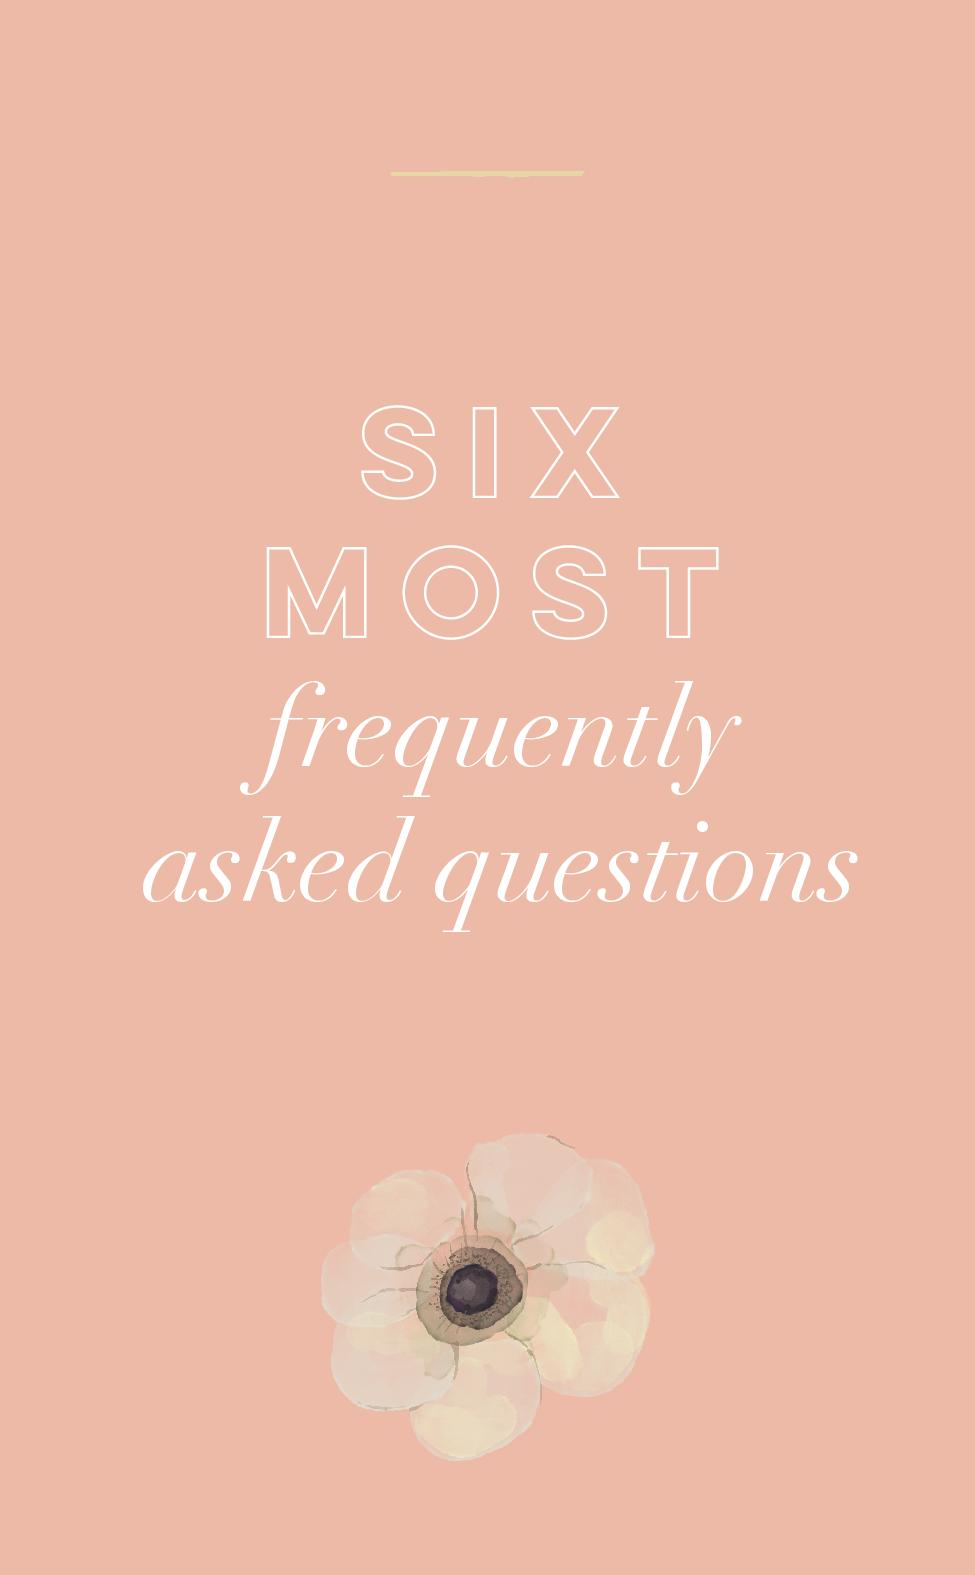 six most frequently asked questions.jpg